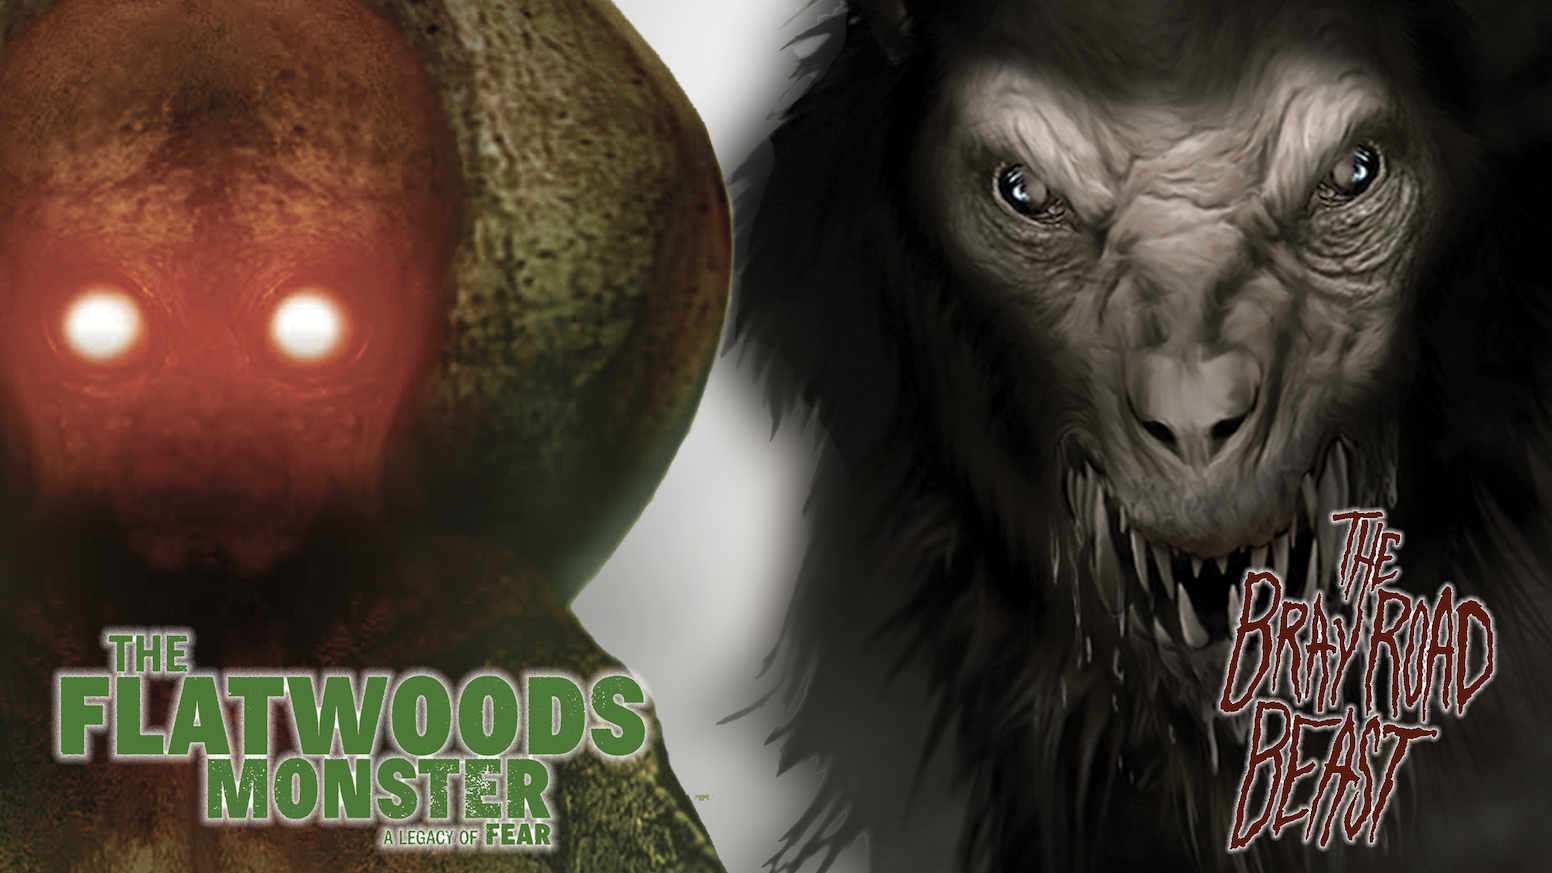 flatwoods monster bray road beast champ documentaries by small